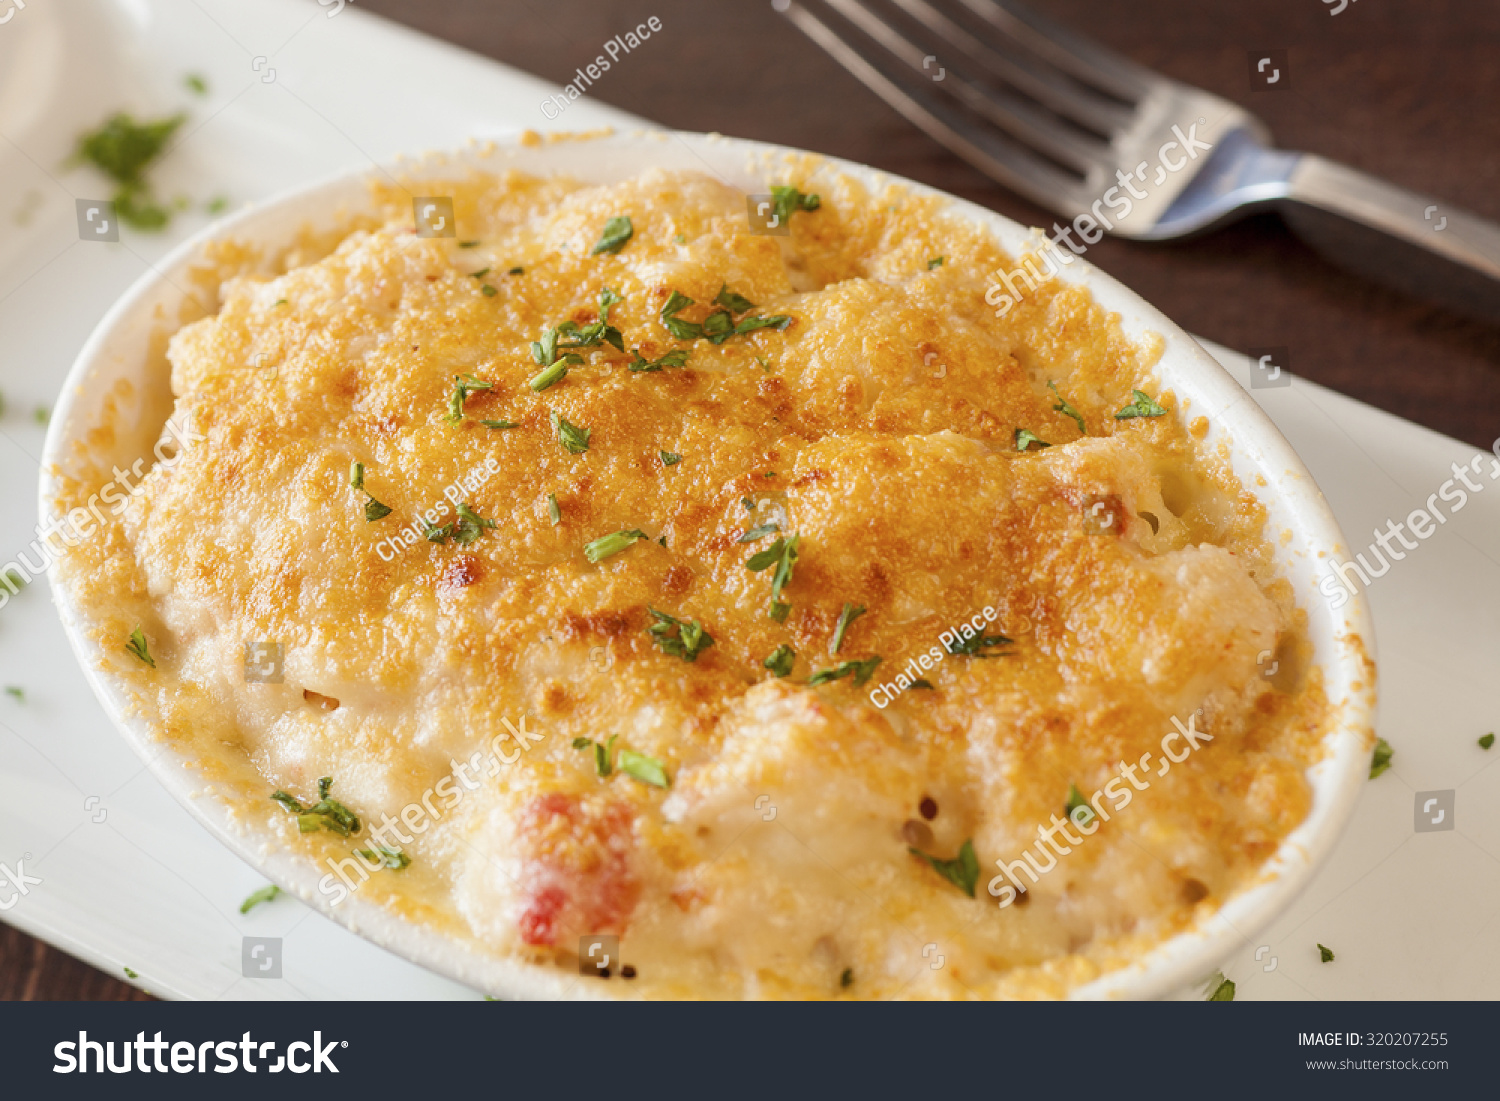 Lobster Mac N Cheese Topped Truffle Stock Photo 320207255 ...